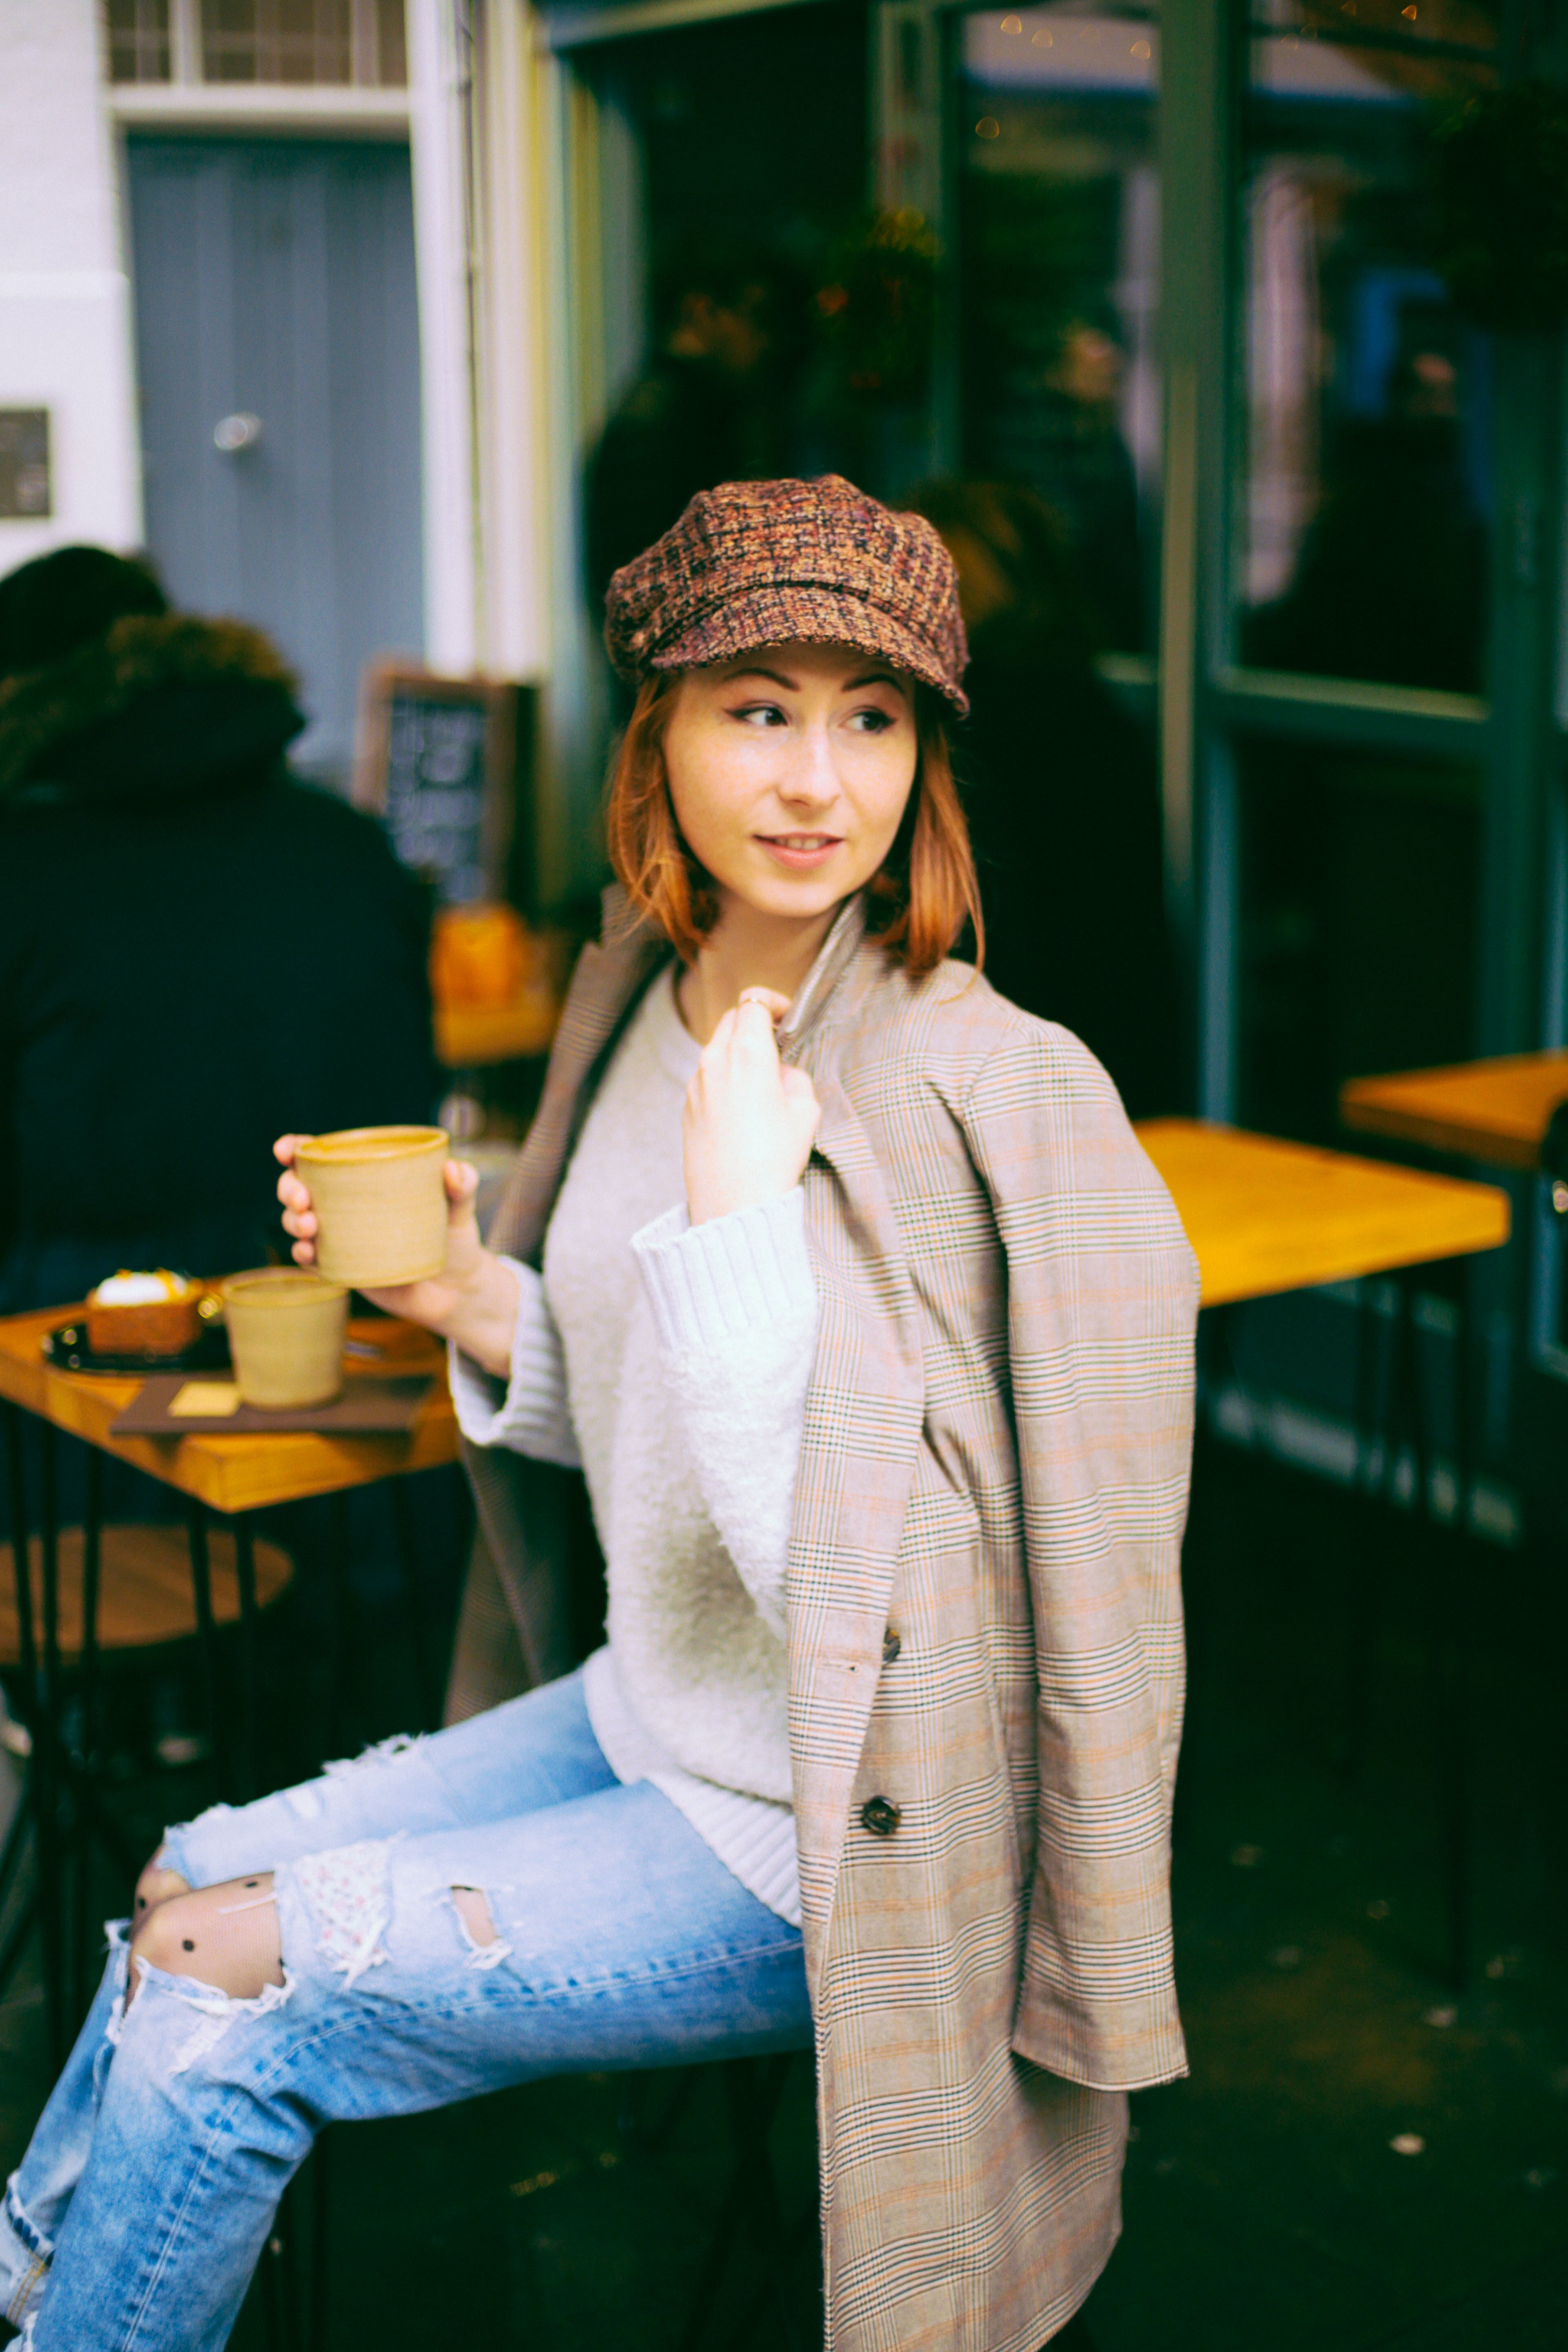 Woman Wearing Brown Coat Holding Cup Sitting on Chair